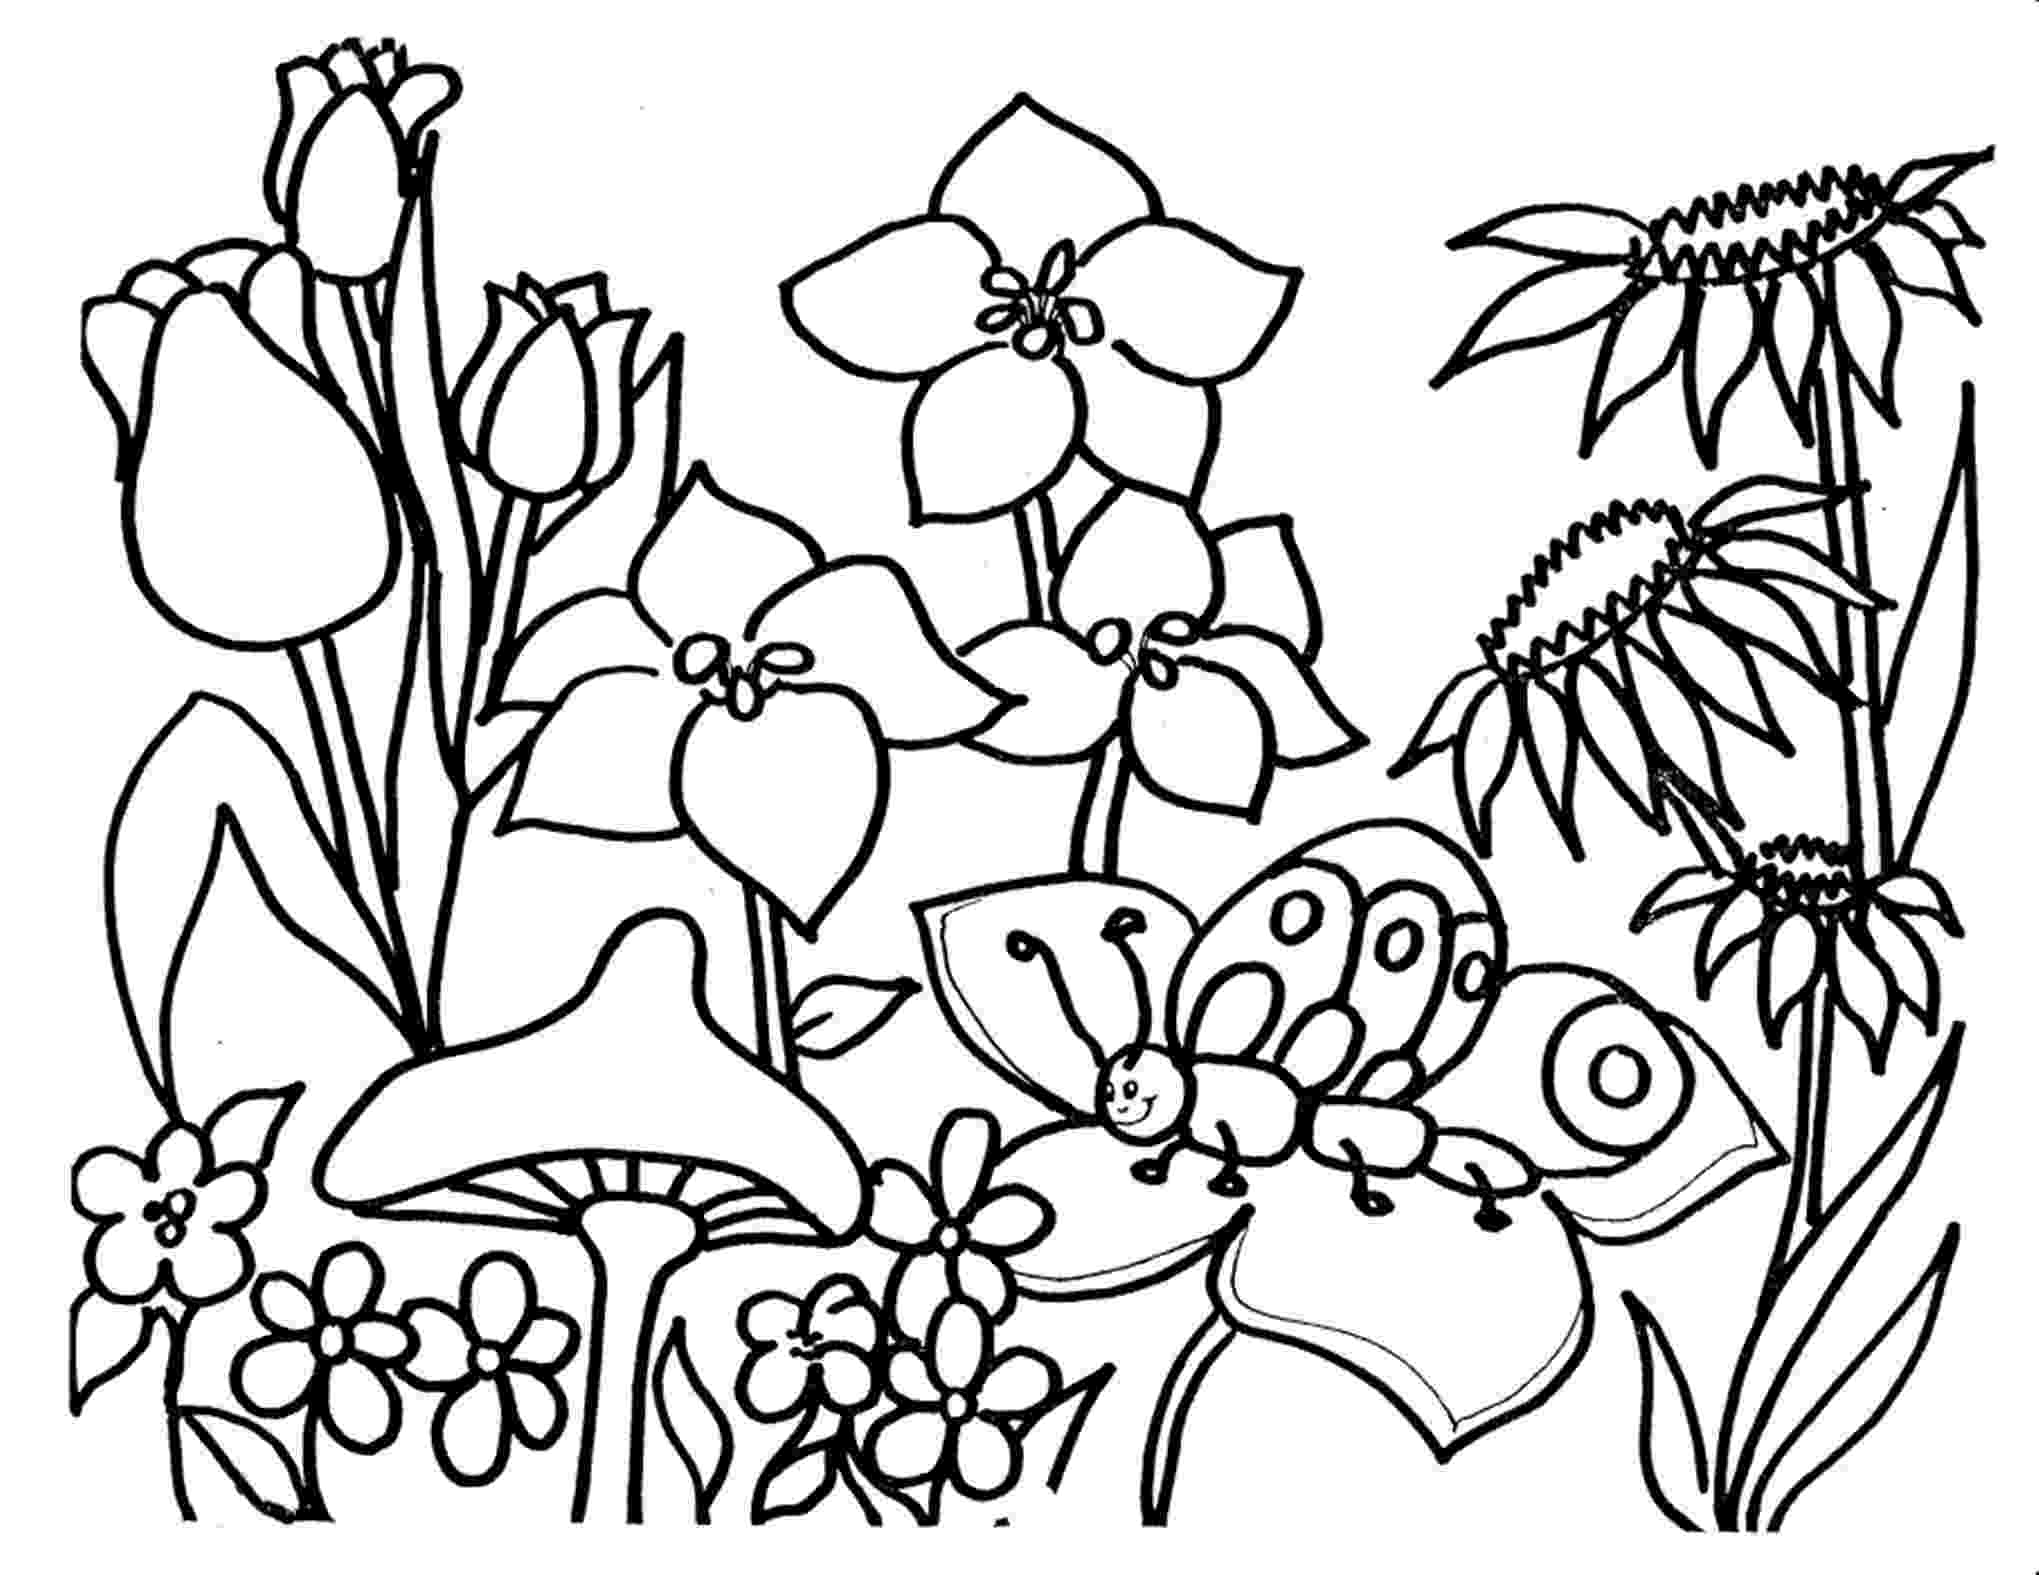 printable coloring pages plants plants vs zombies coloring pages to download and print for pages plants coloring printable